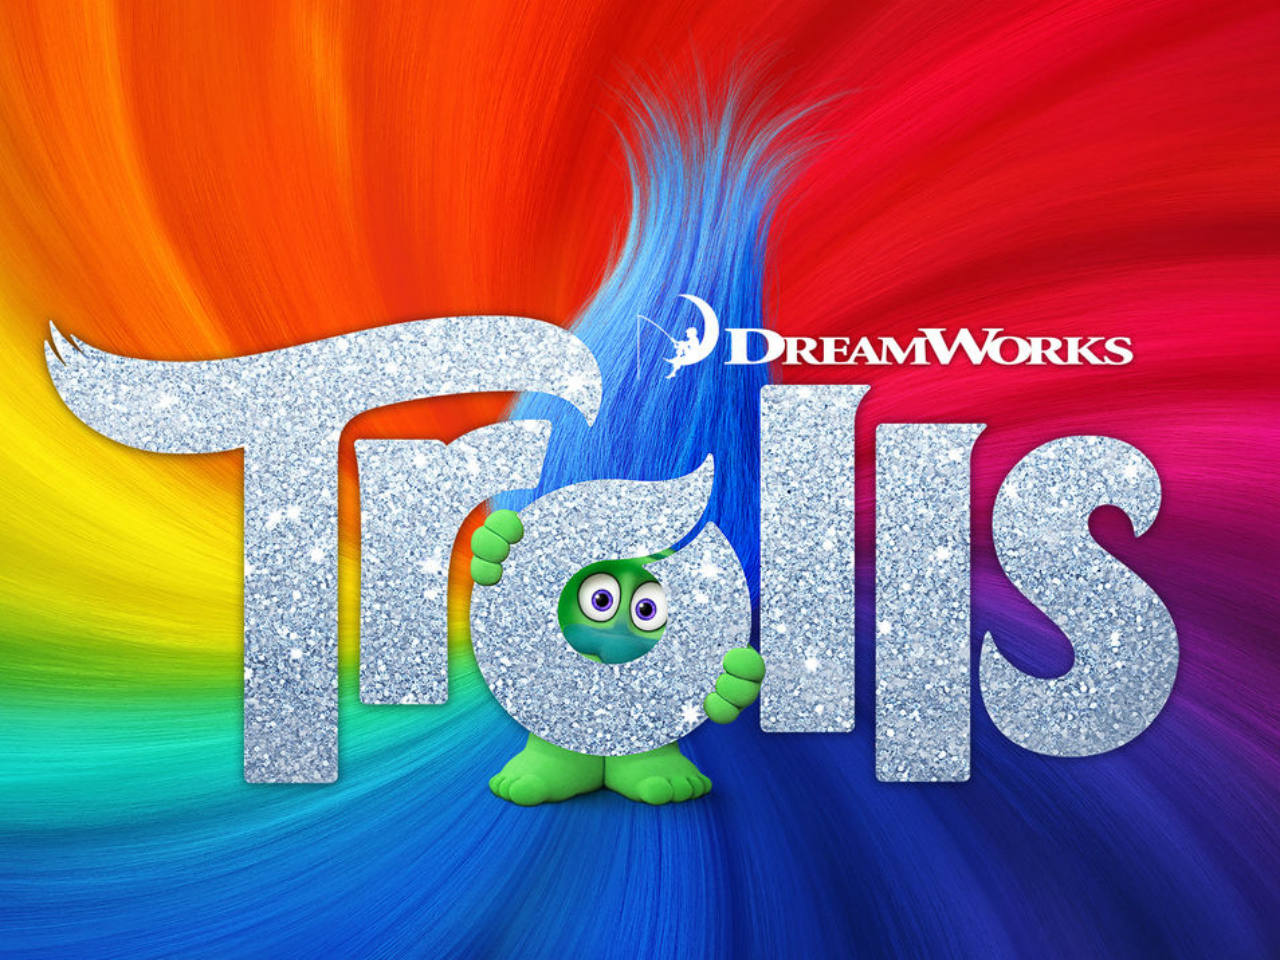 Movie poster for the kids' movie Trolls